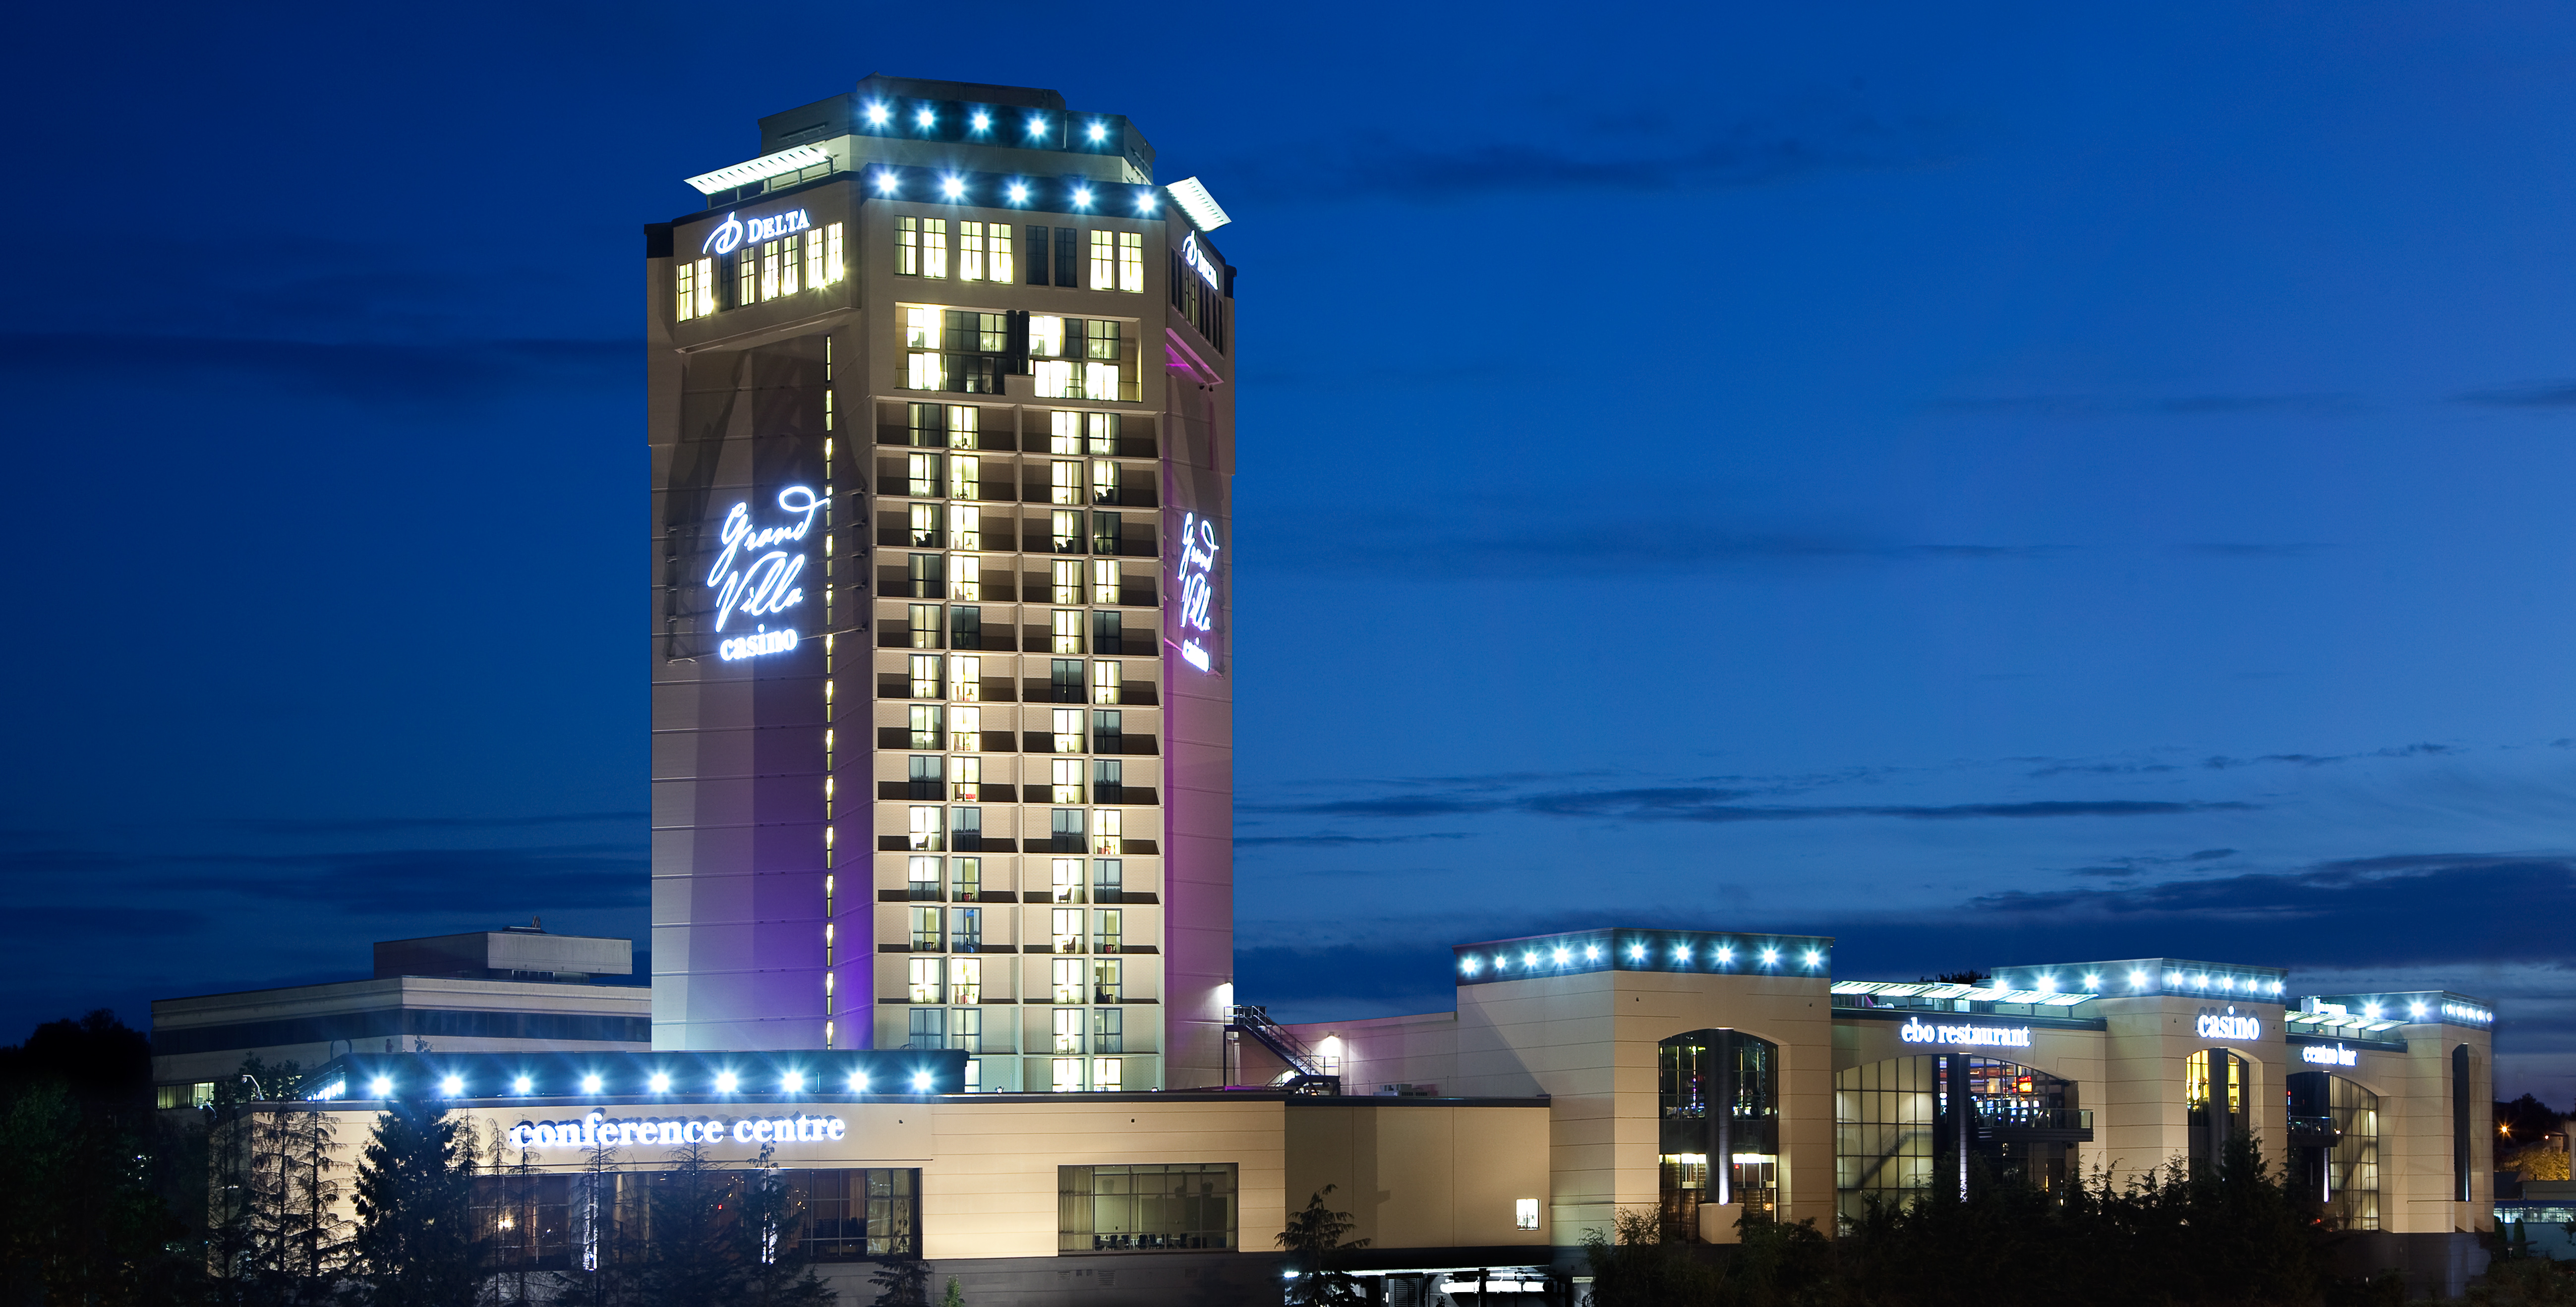 The BBOT sits down with Grand Villa Casino